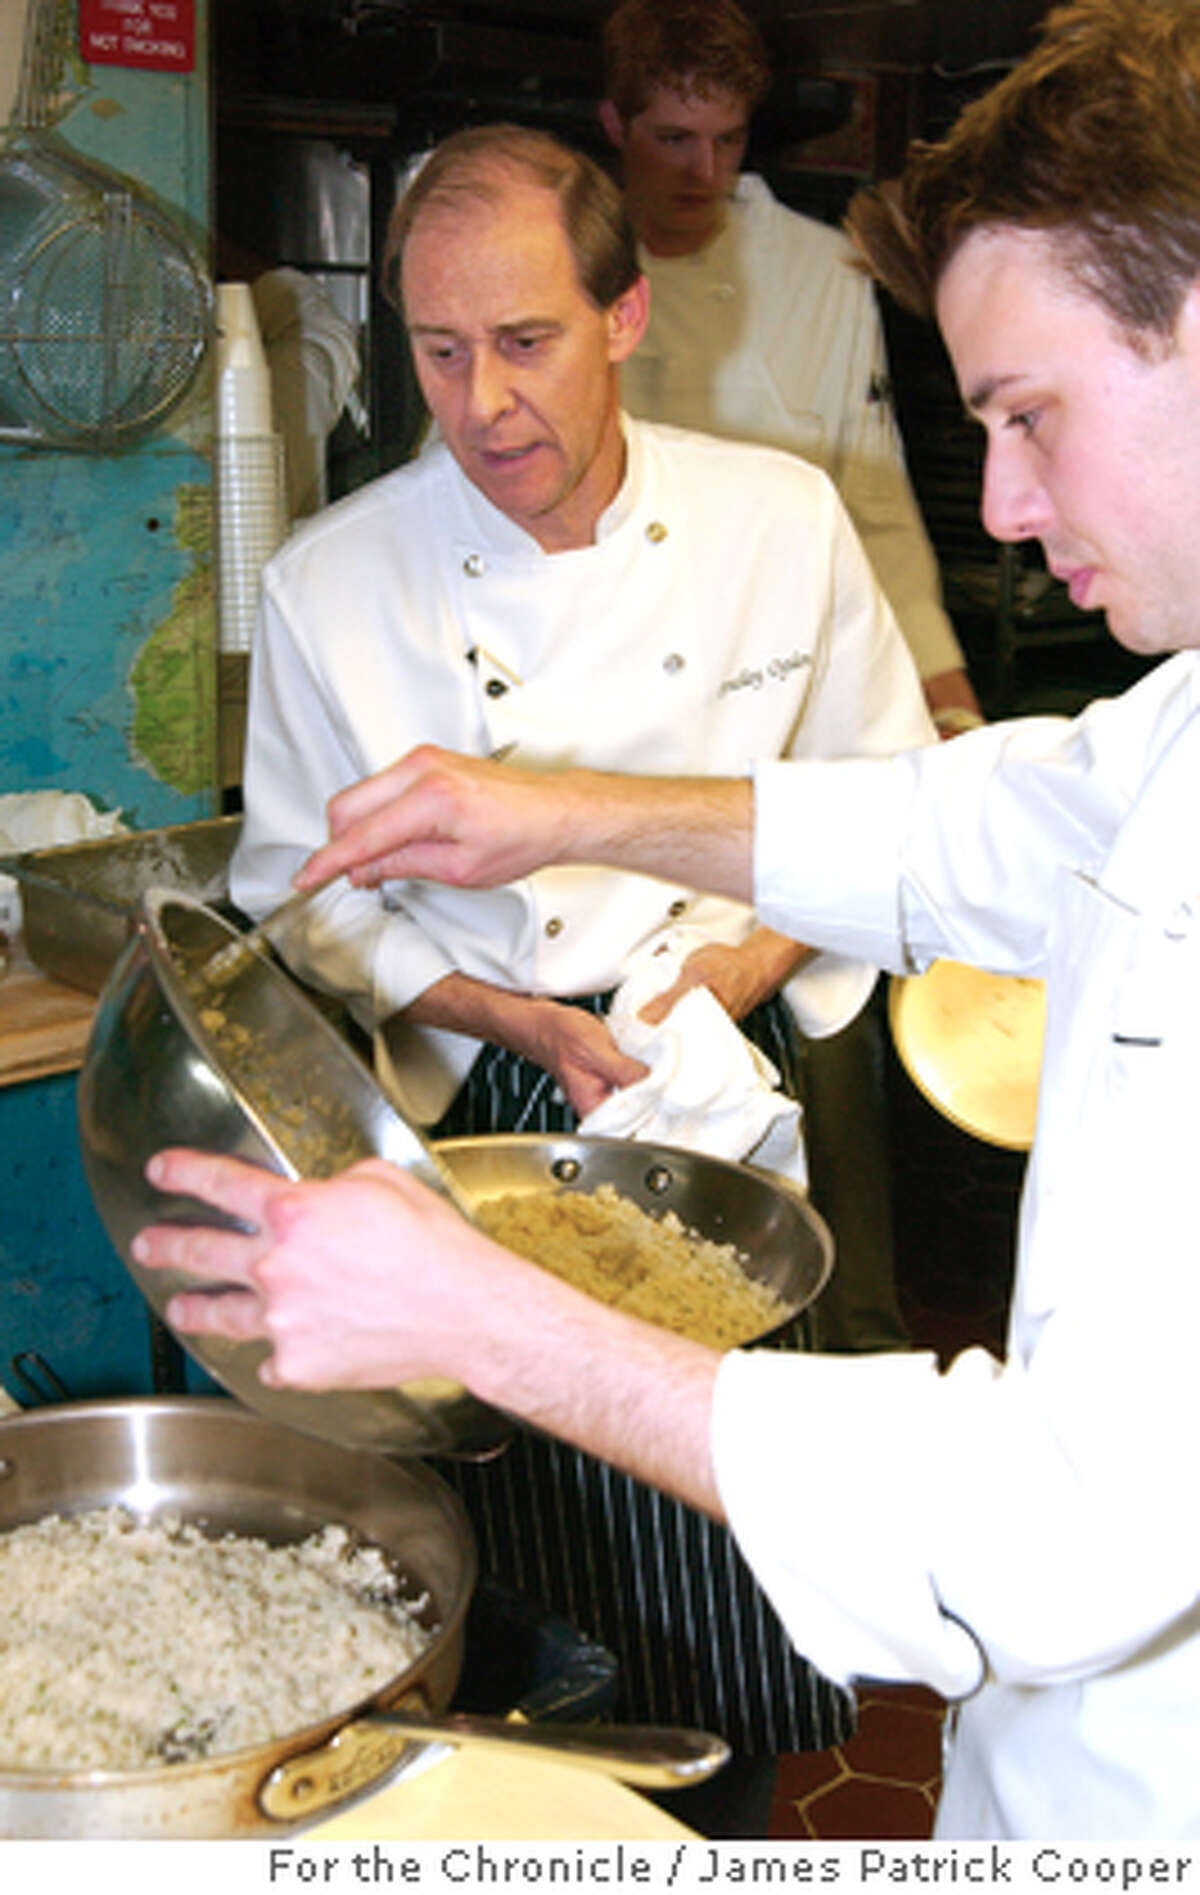 Chef Bradley Ogden prepares dinner at The James Beard Foundation House in New York on April25, 2005. Photo by James Patrick Cooper/For The Chronicle